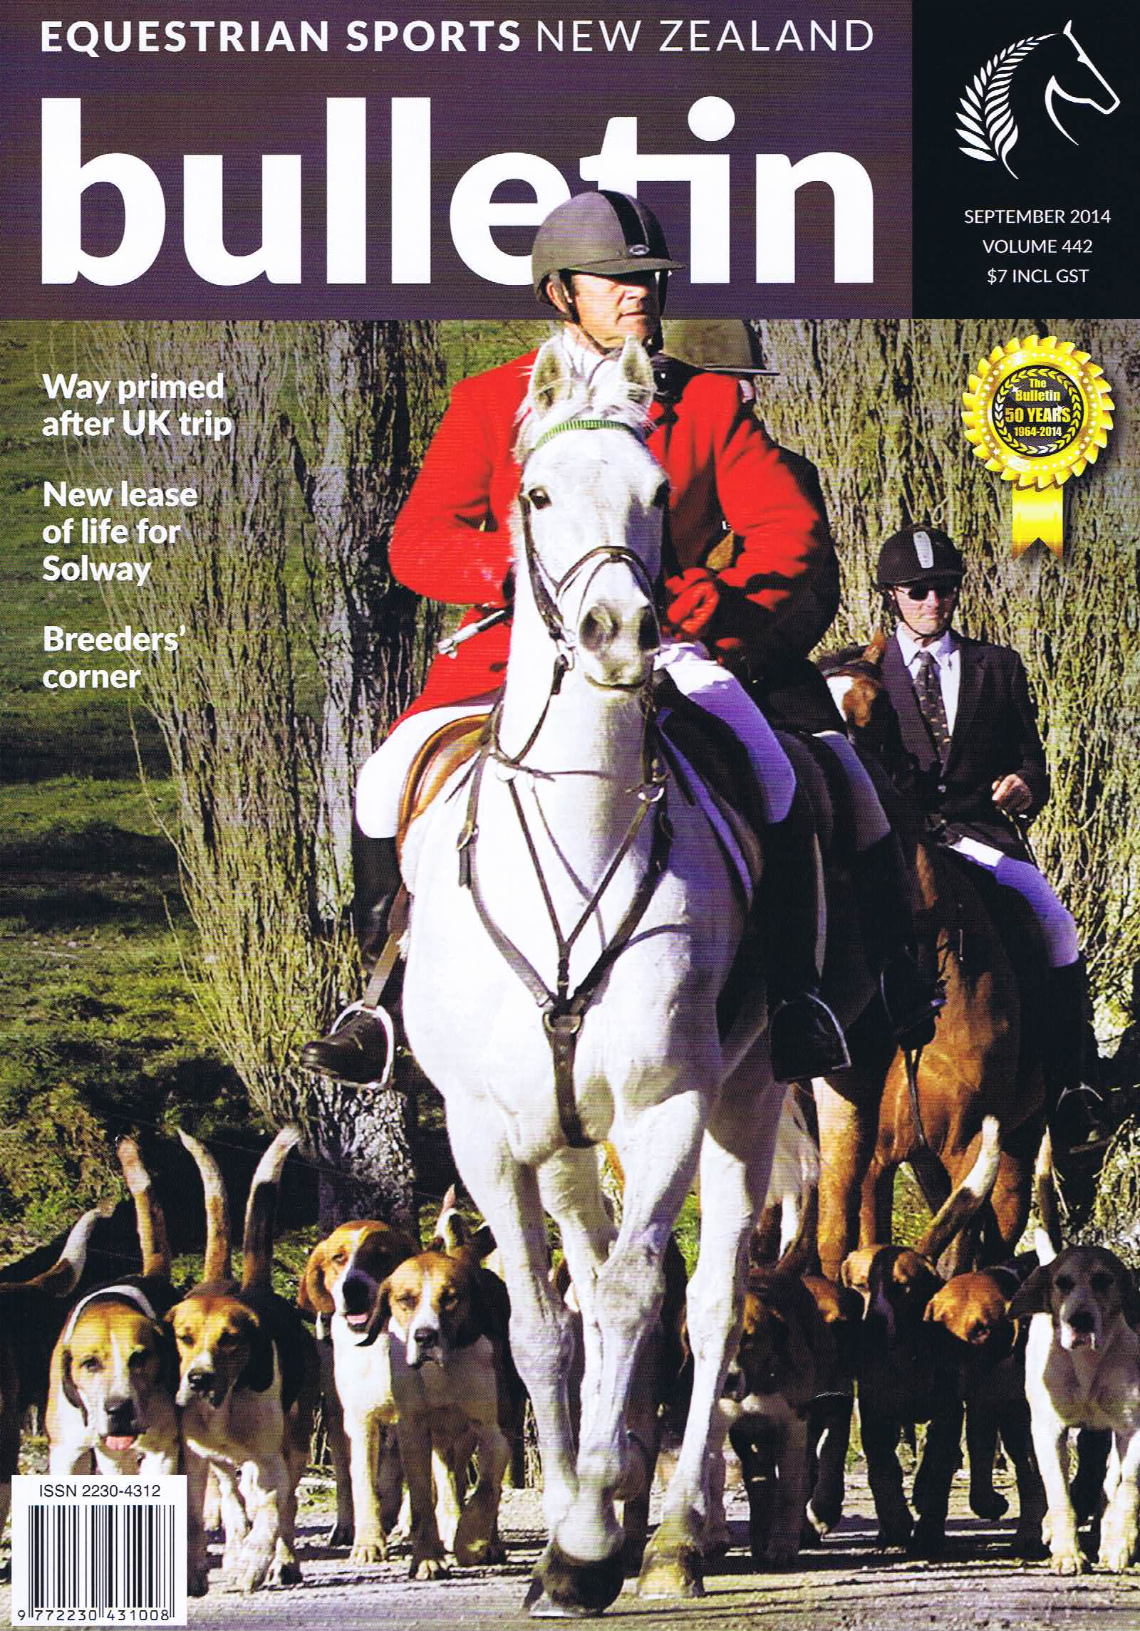 Equestrian Sports NZ-September 2014